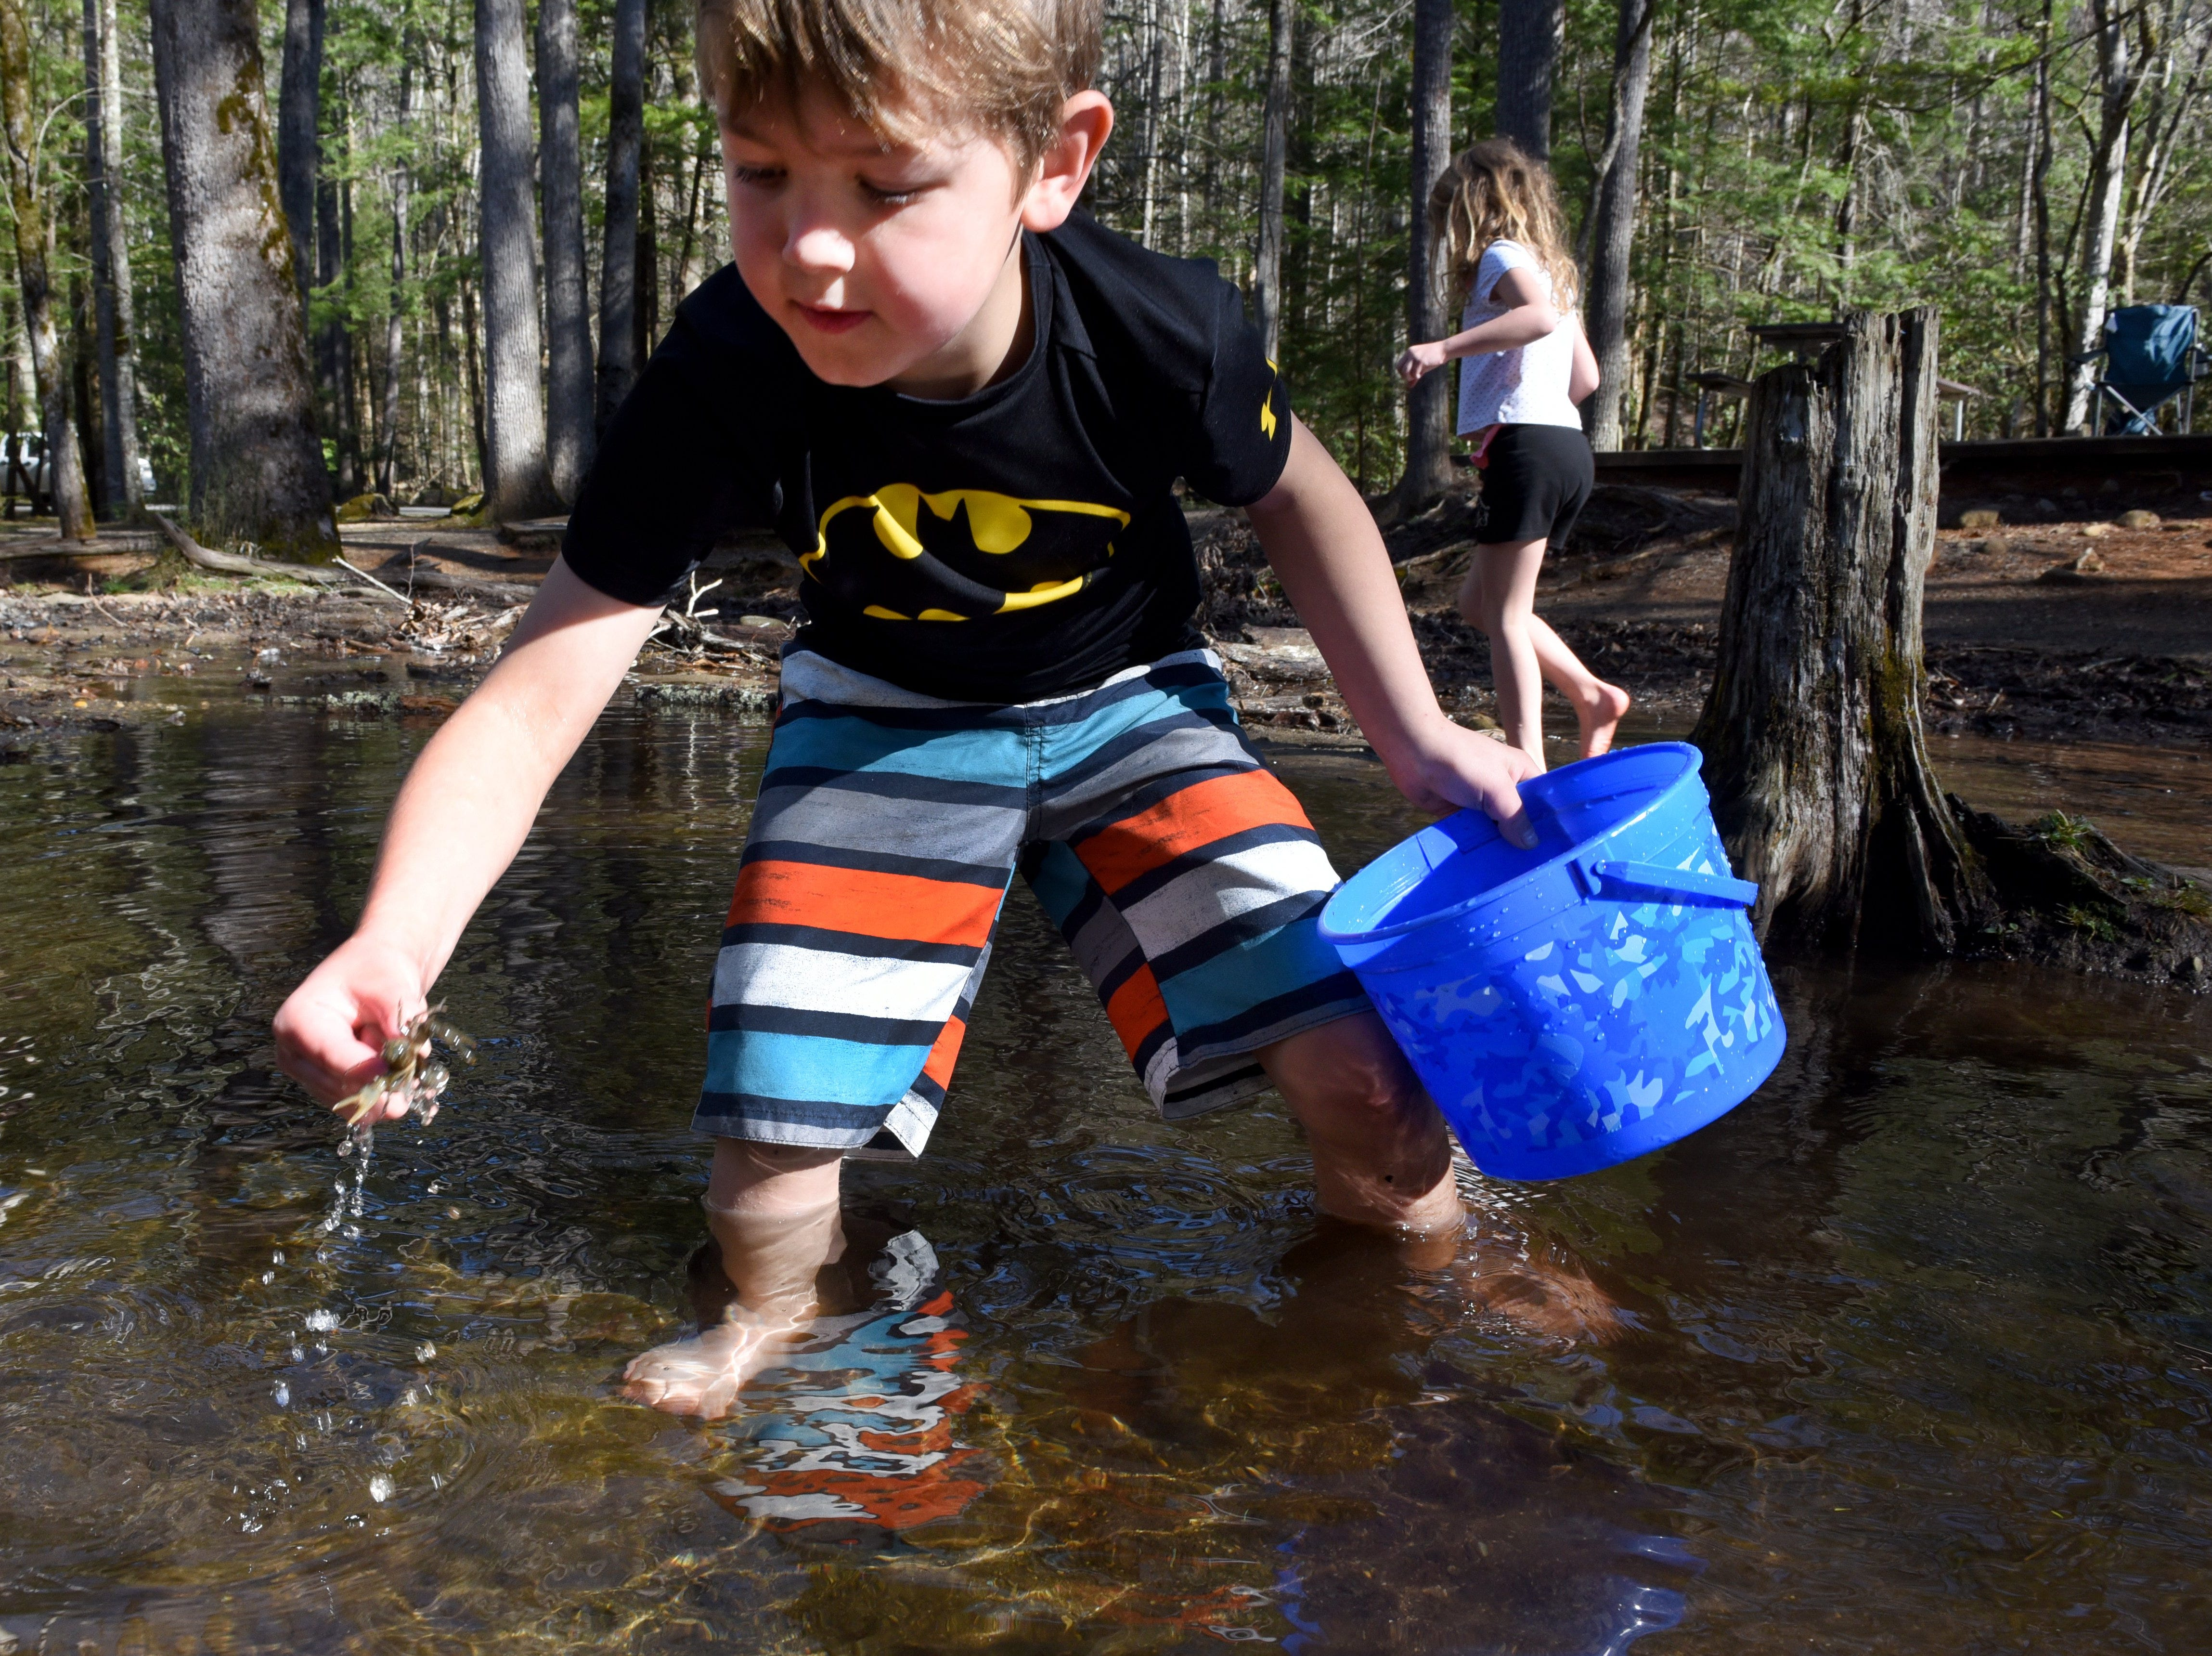 Parker Tallent, 7, catches a crawfish in the creek at the Cades Cove picnic area Tuesday, Mar. 15, 2016 while playing with his siblings. The Tallents are from Sevierville and visiting for a spring break picnic.   (MICHAEL PATRICK/NEWS SENTINEL)